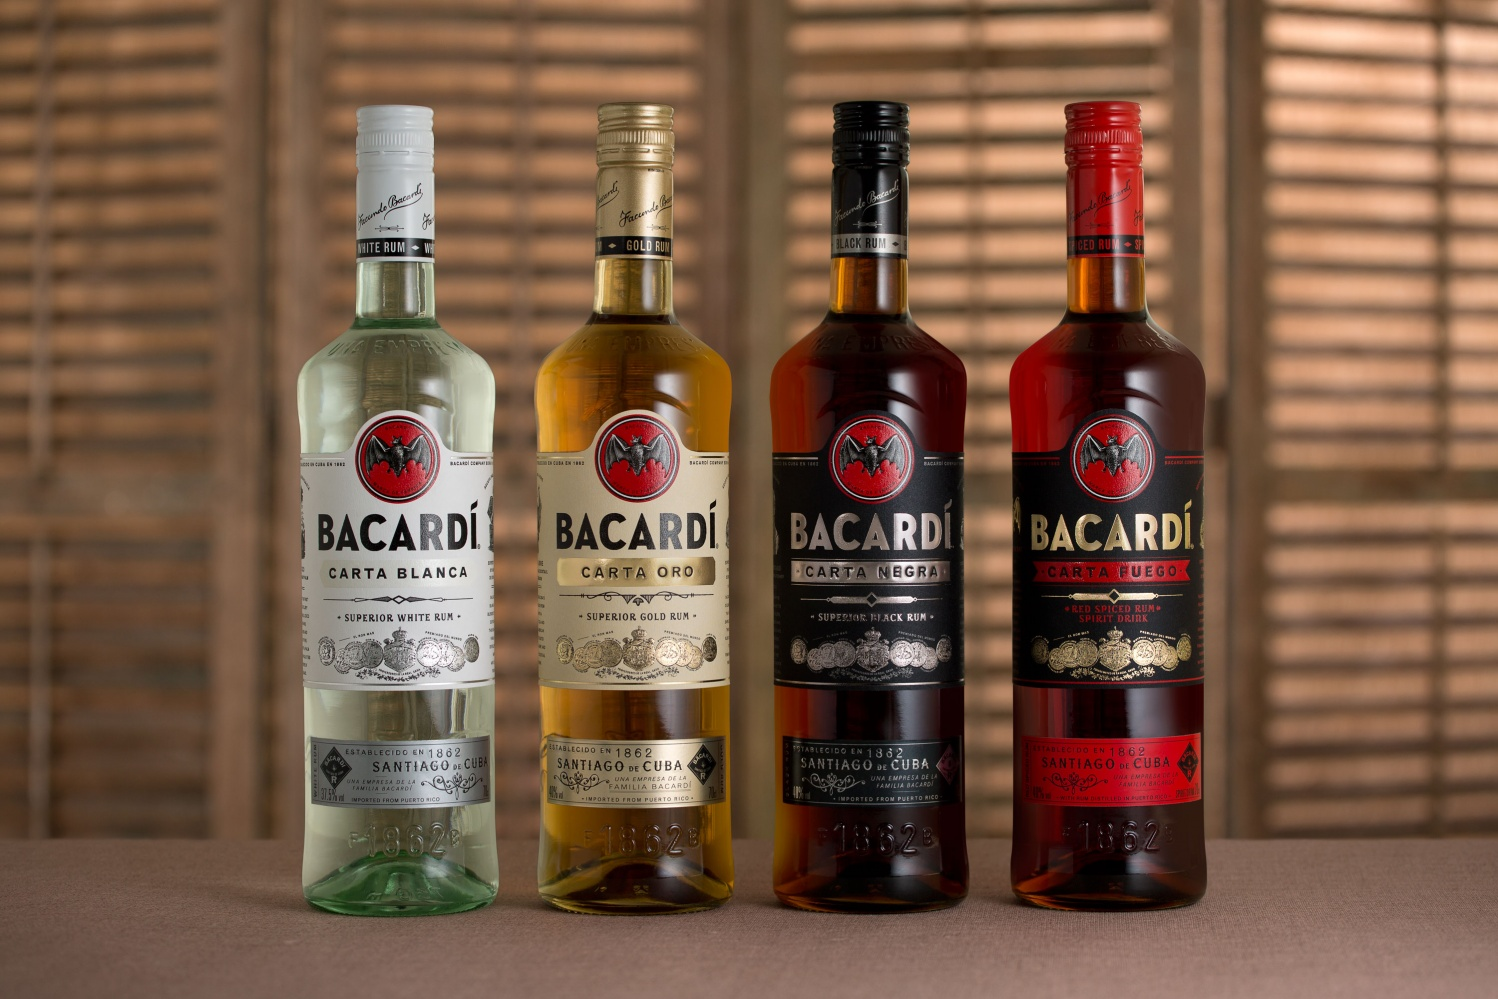 1498x999 > Bacardi Wallpapers